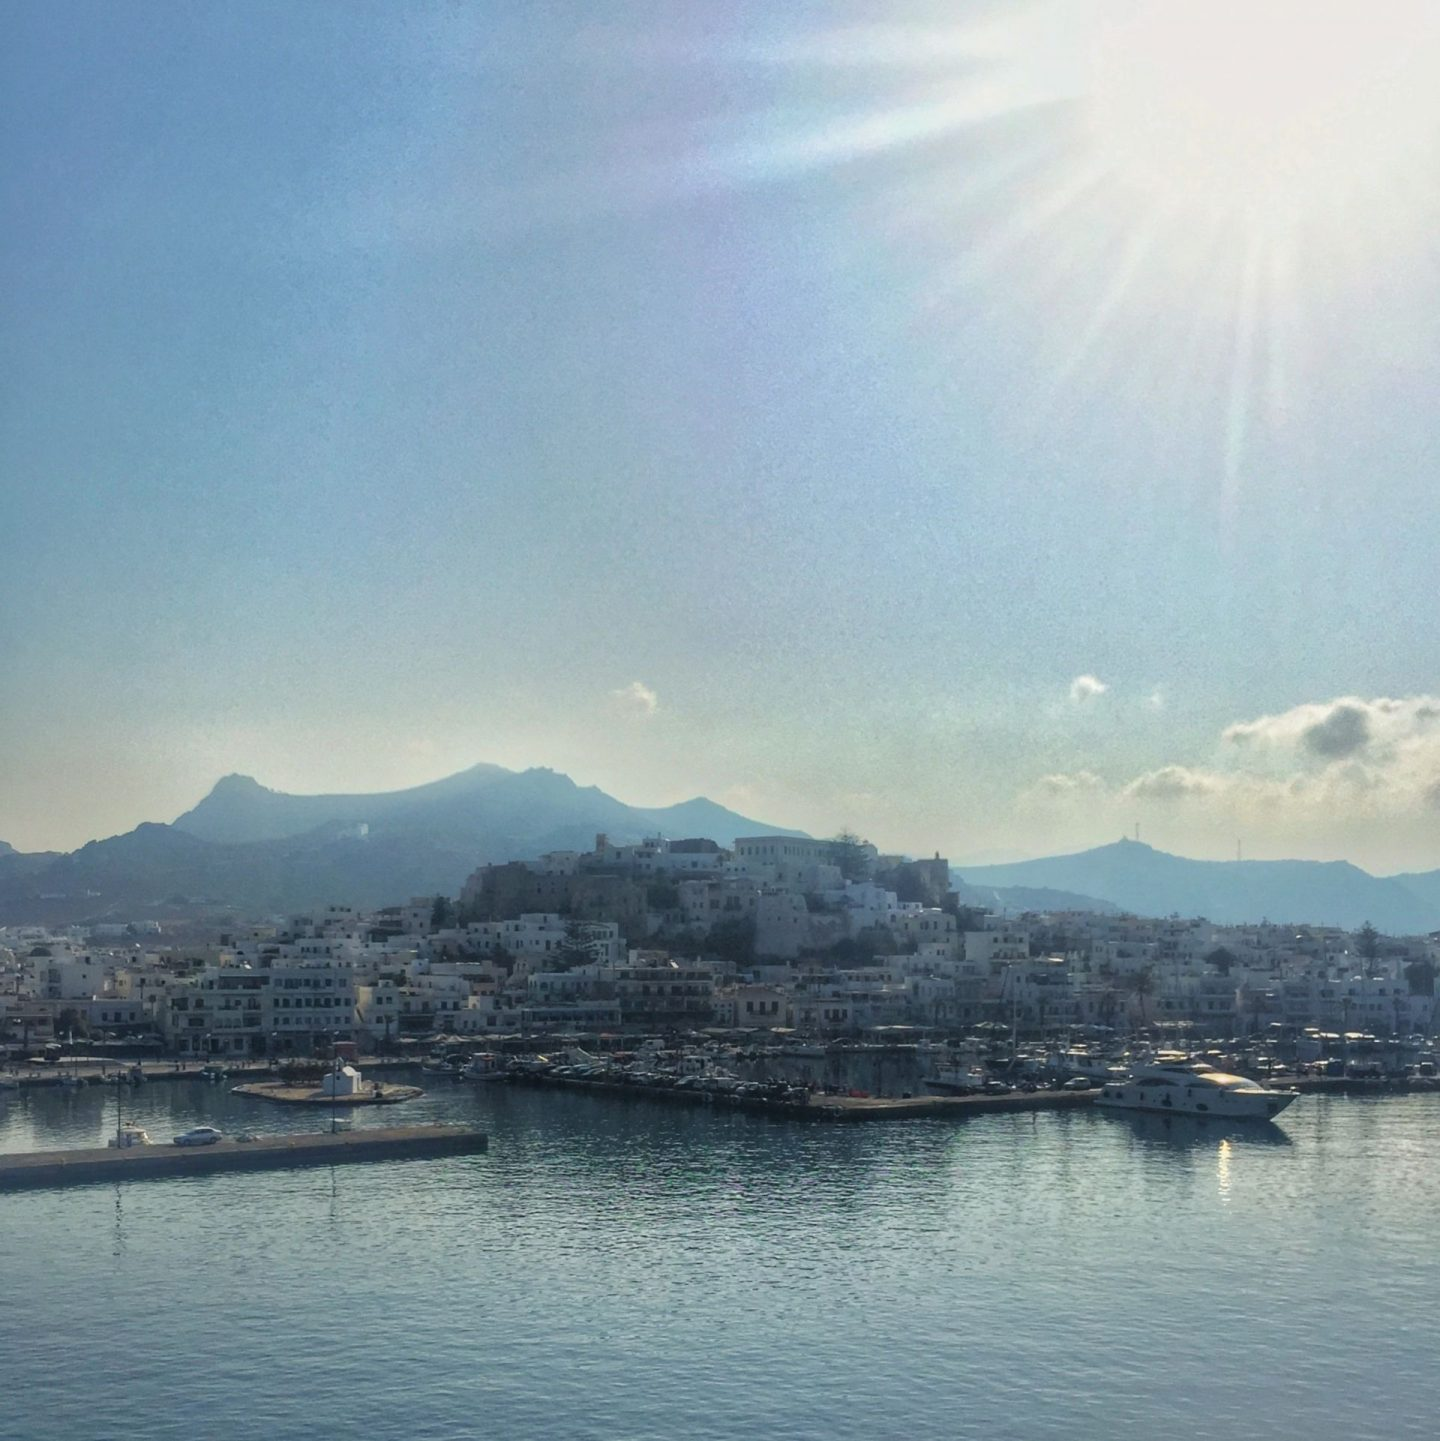 Port town of Naxos as viewed from a ferry